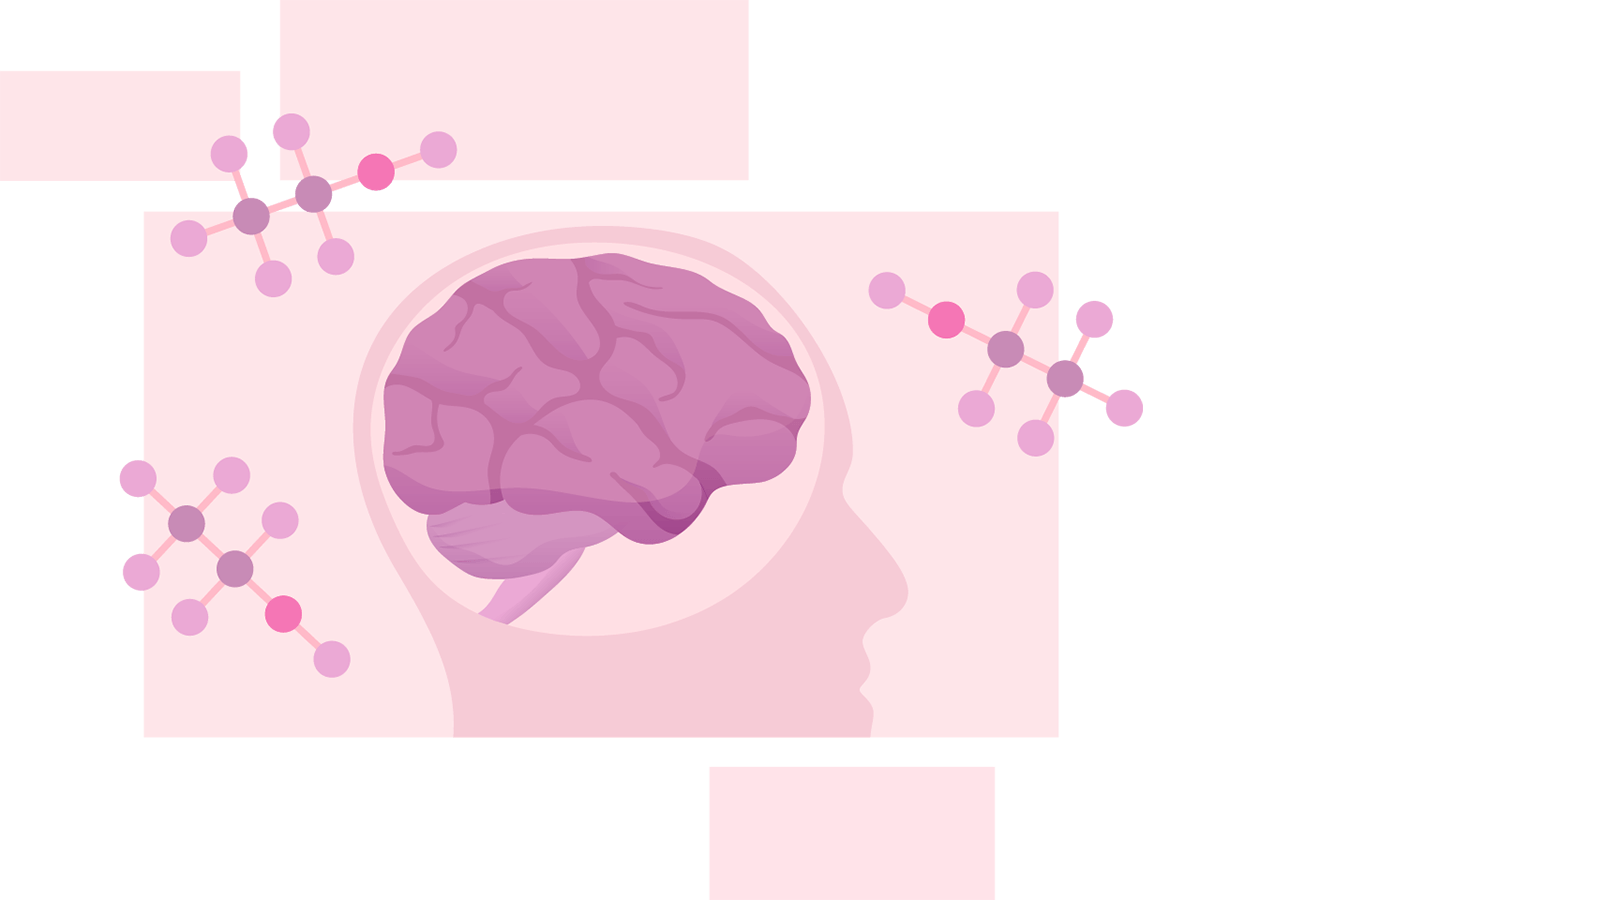 Illustration of a human head with the brain exposed